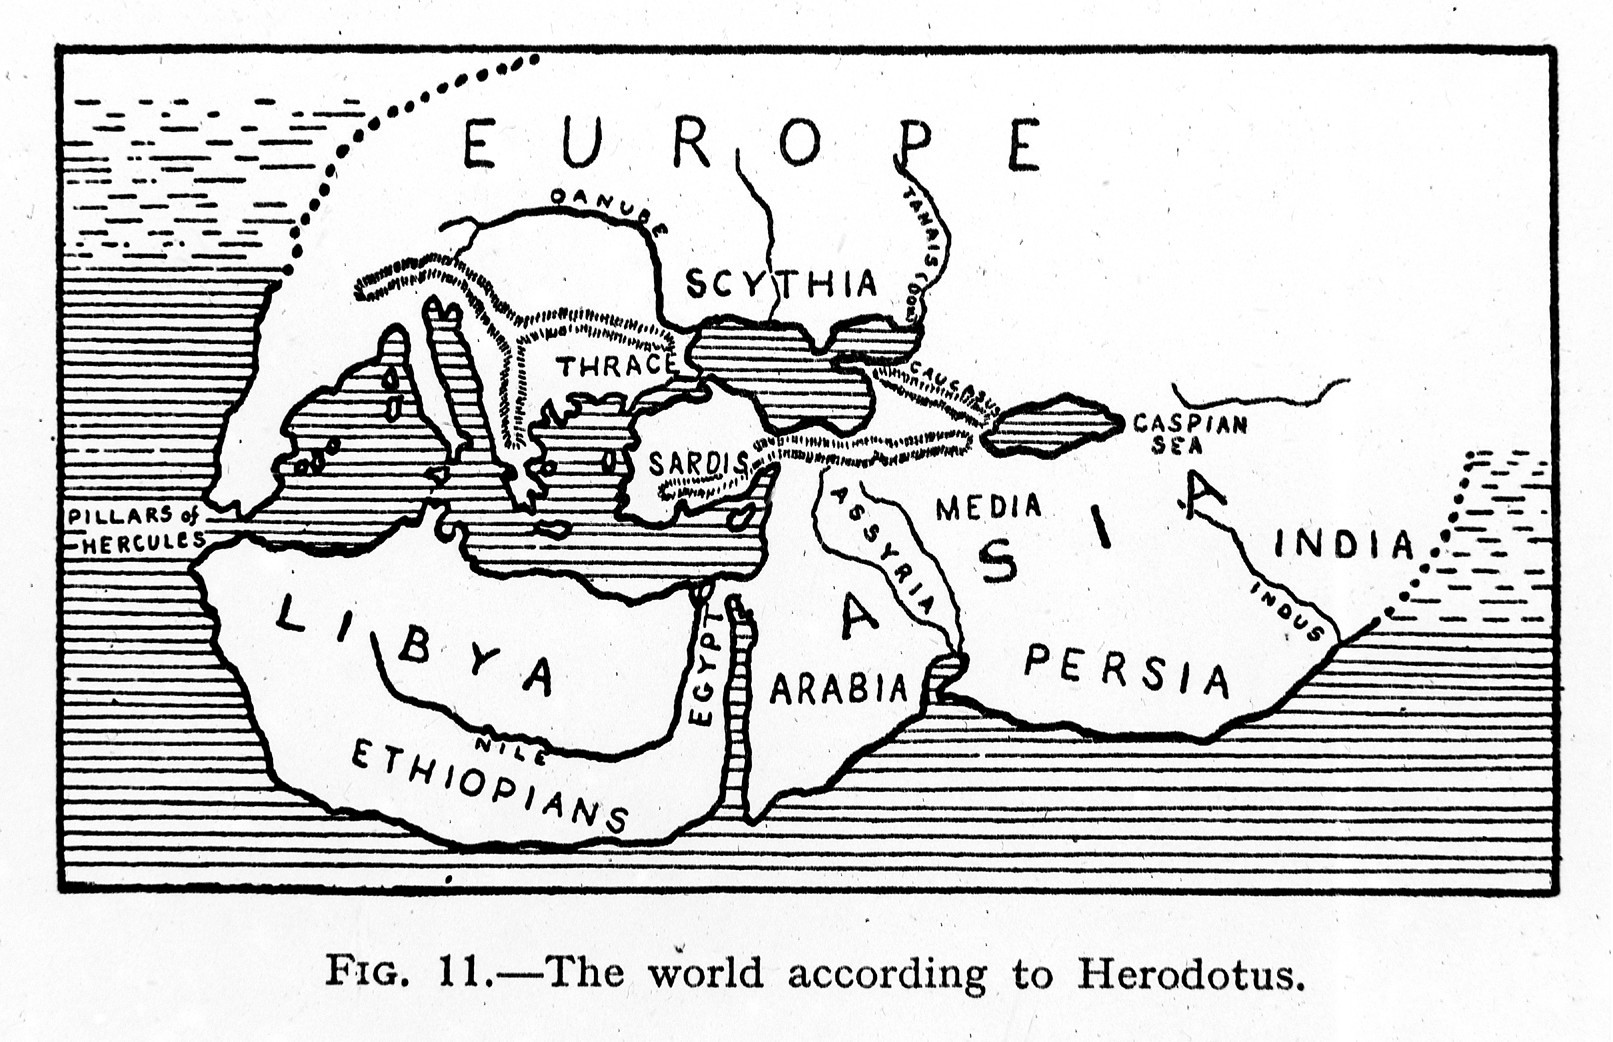 Pen and ink rendering of Europe and north Africa with major regions indicated: Europe, Libya (most of north Africa), and Asia